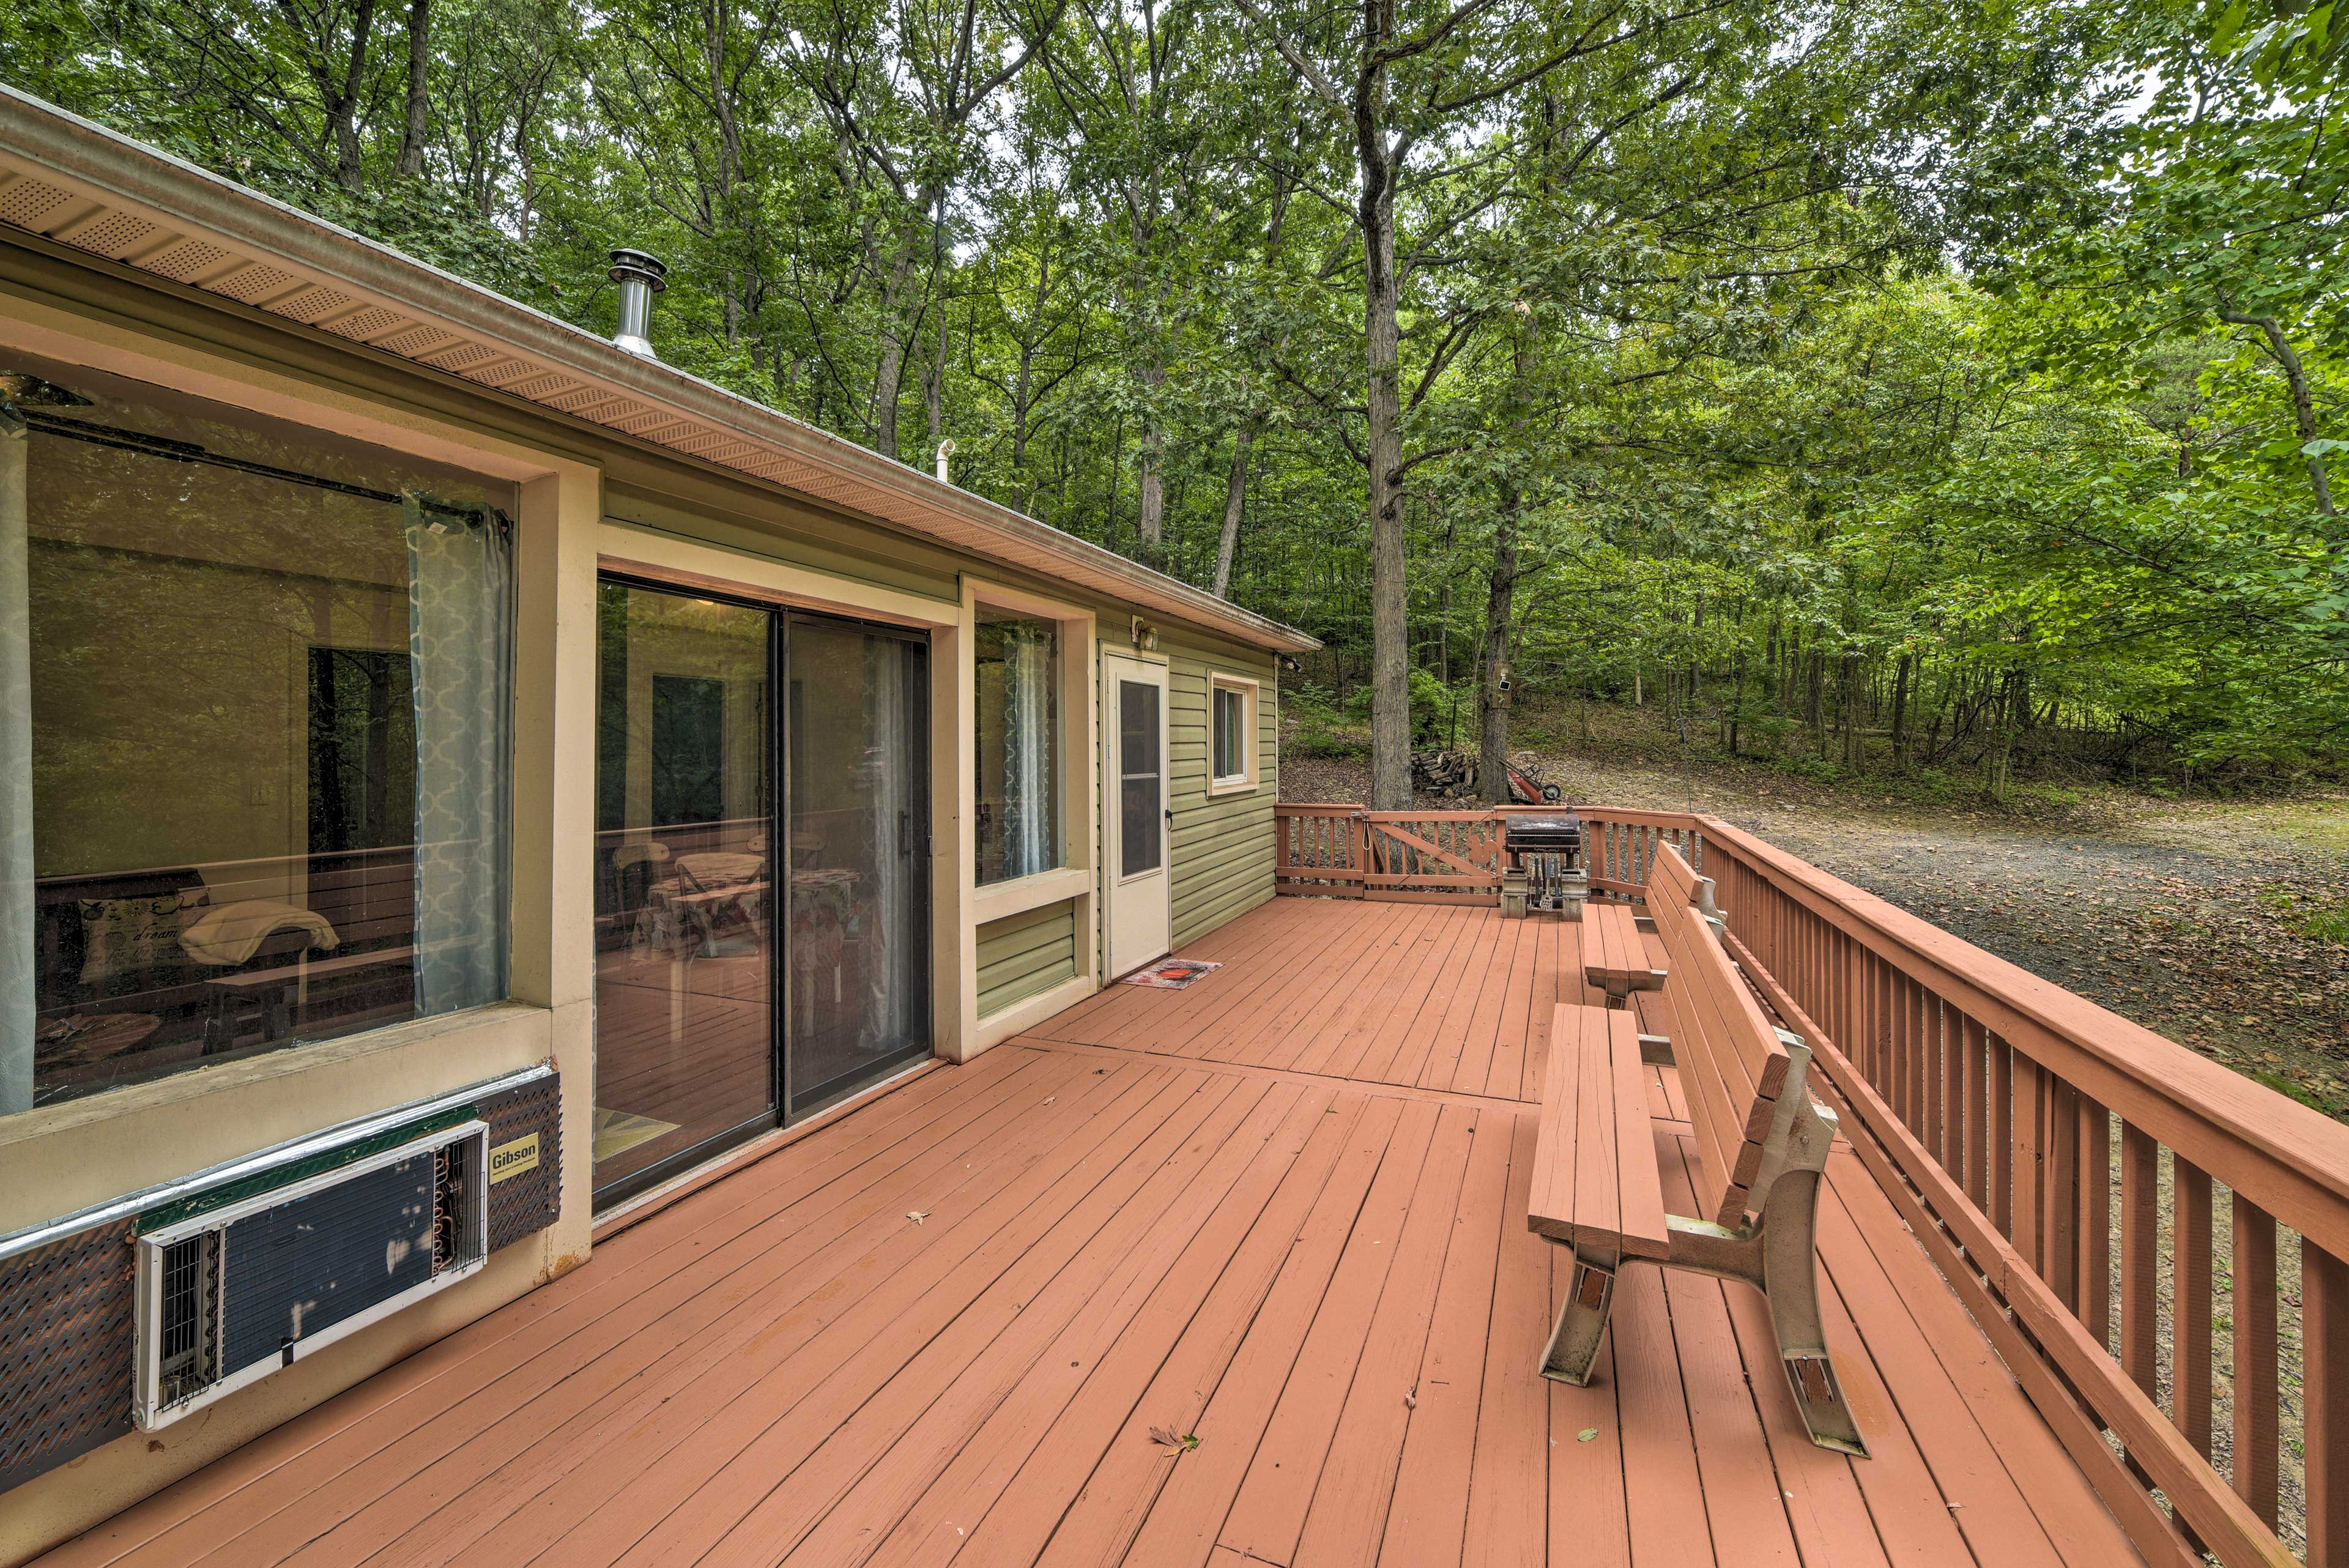 There is so much room for activities out on the deck!